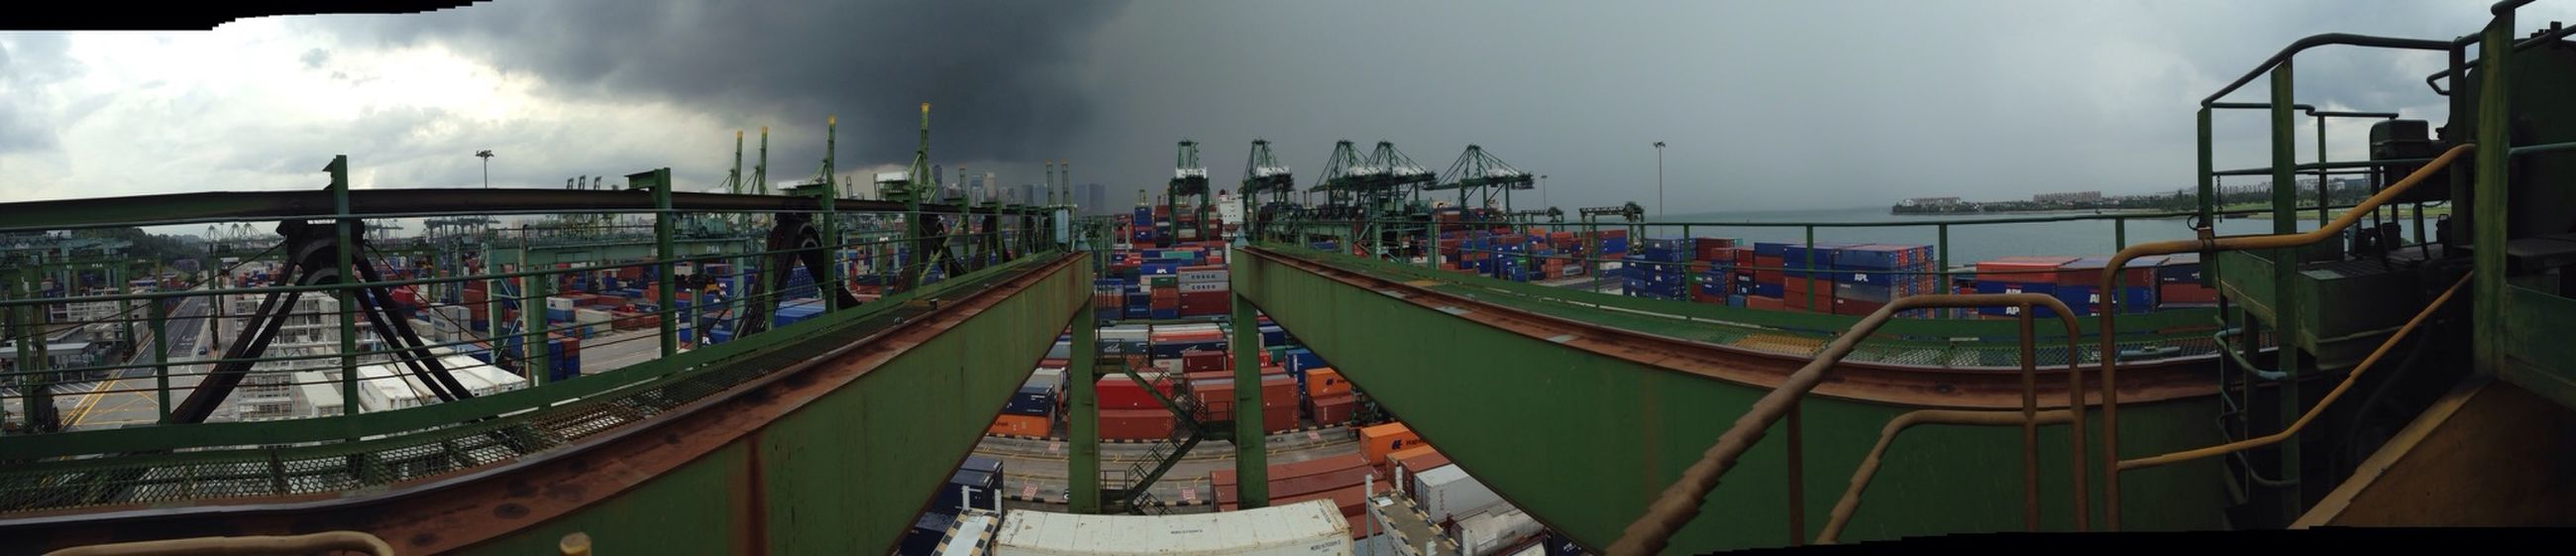 No Filter Panorama Iphone5C Singapore Cranes Rain Rain Rain